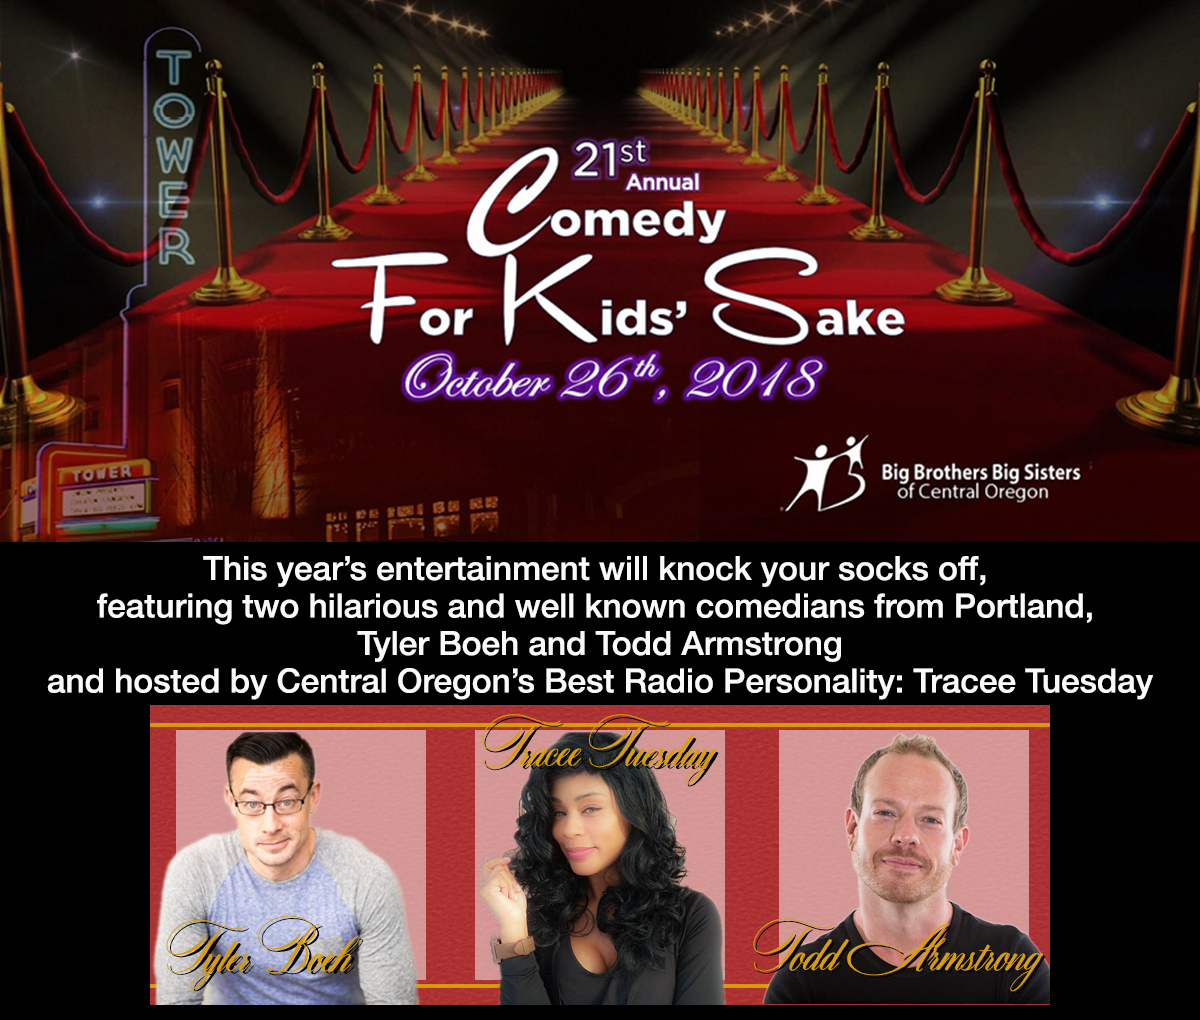 Comedy For Kids Sake @ Tower Theater | Bend | Oregon | United States